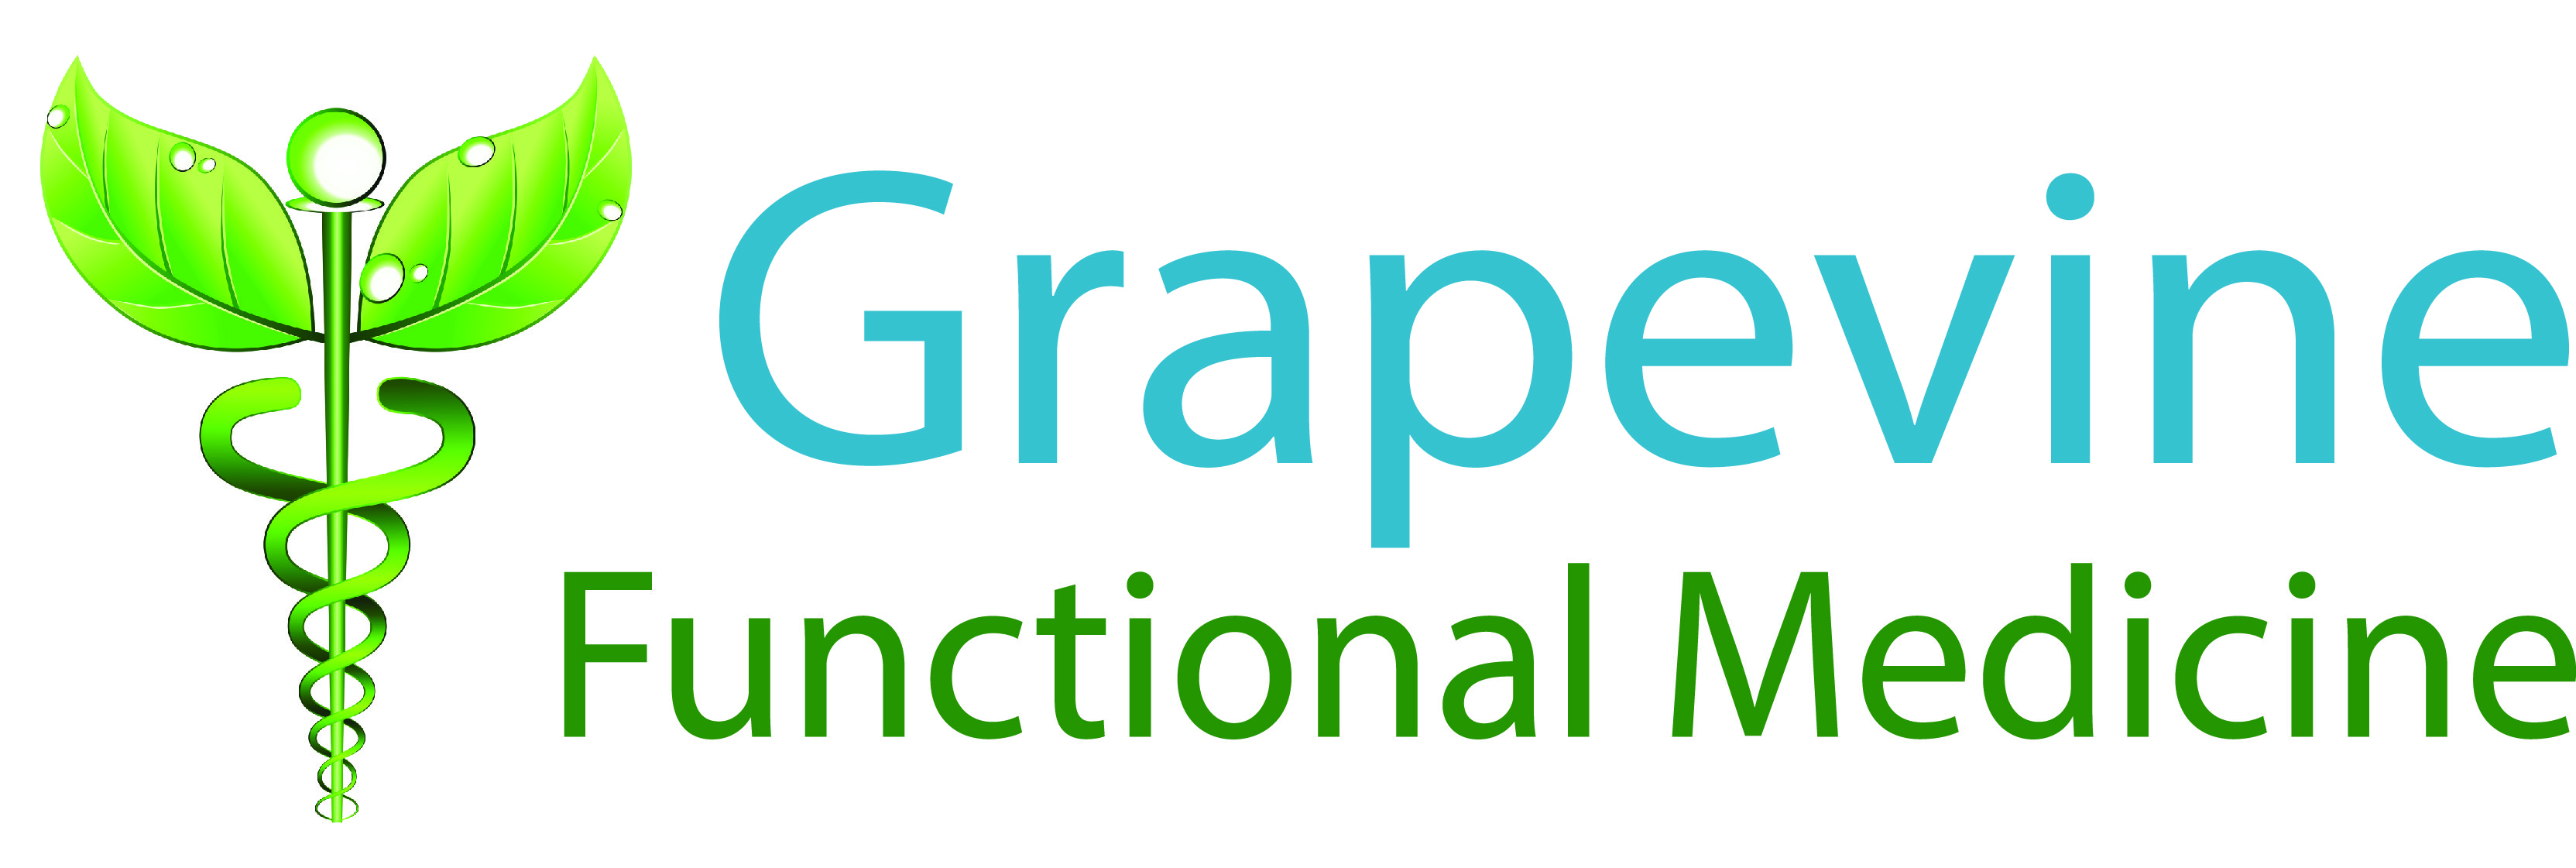 Grapevine Functional Medicine